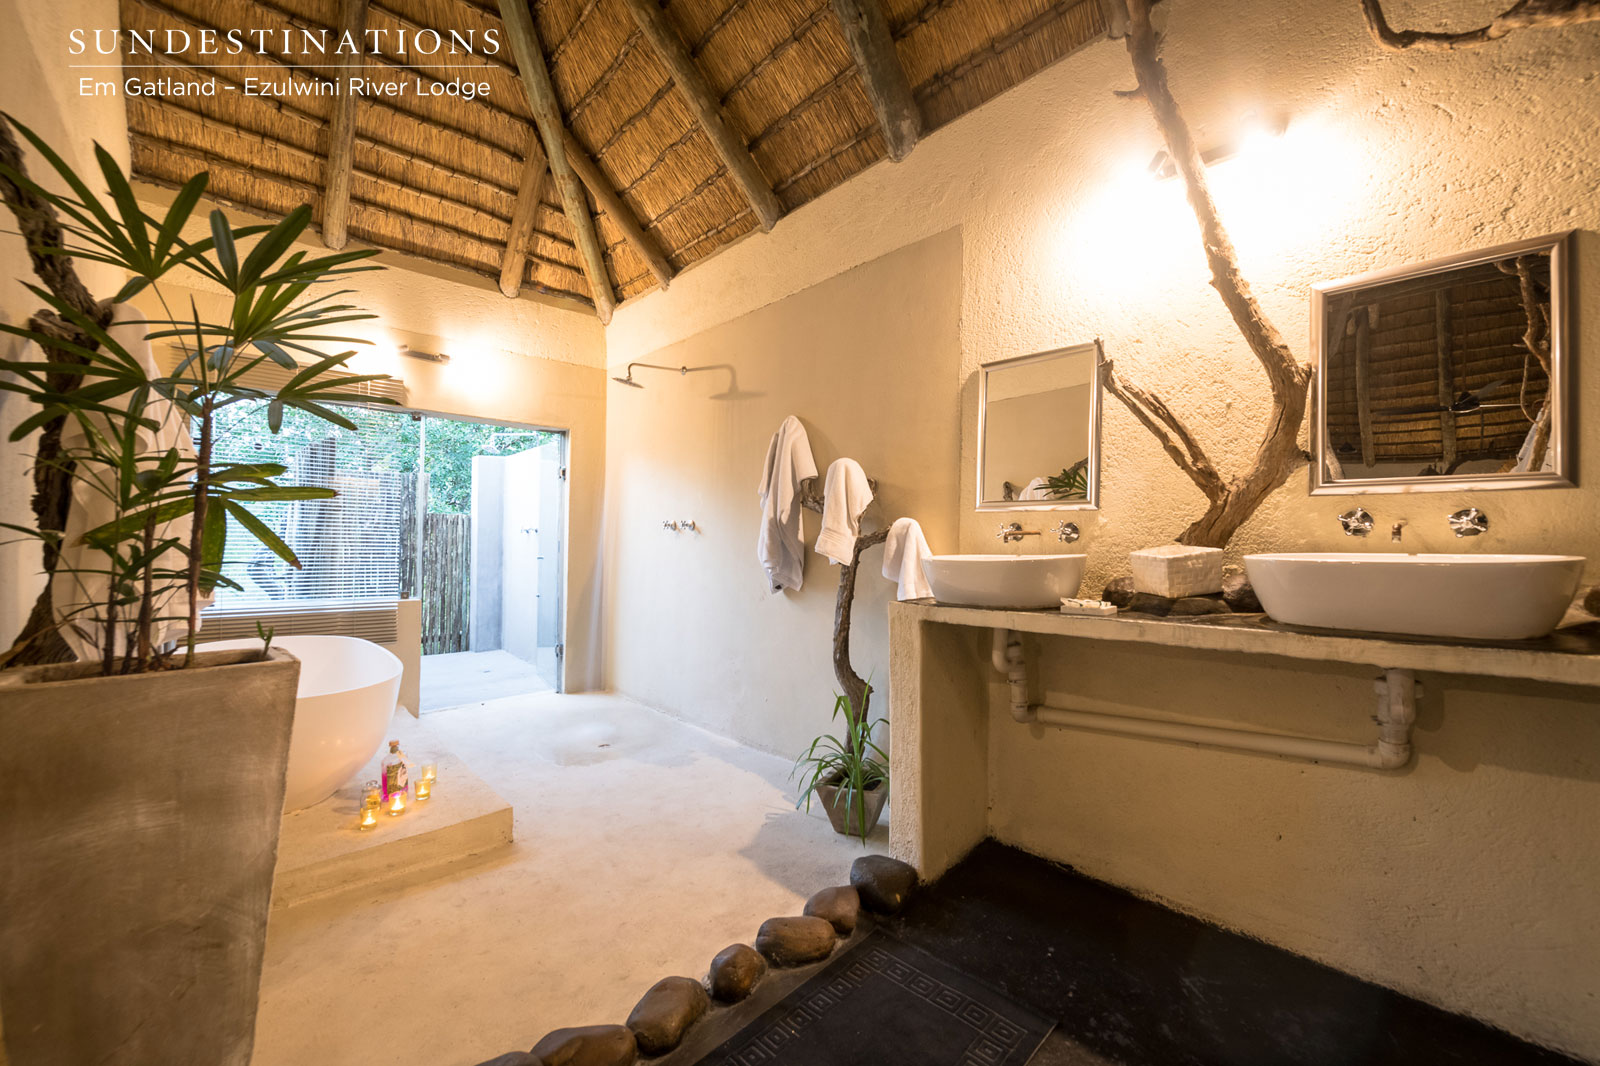 Honeymoon Bathroom